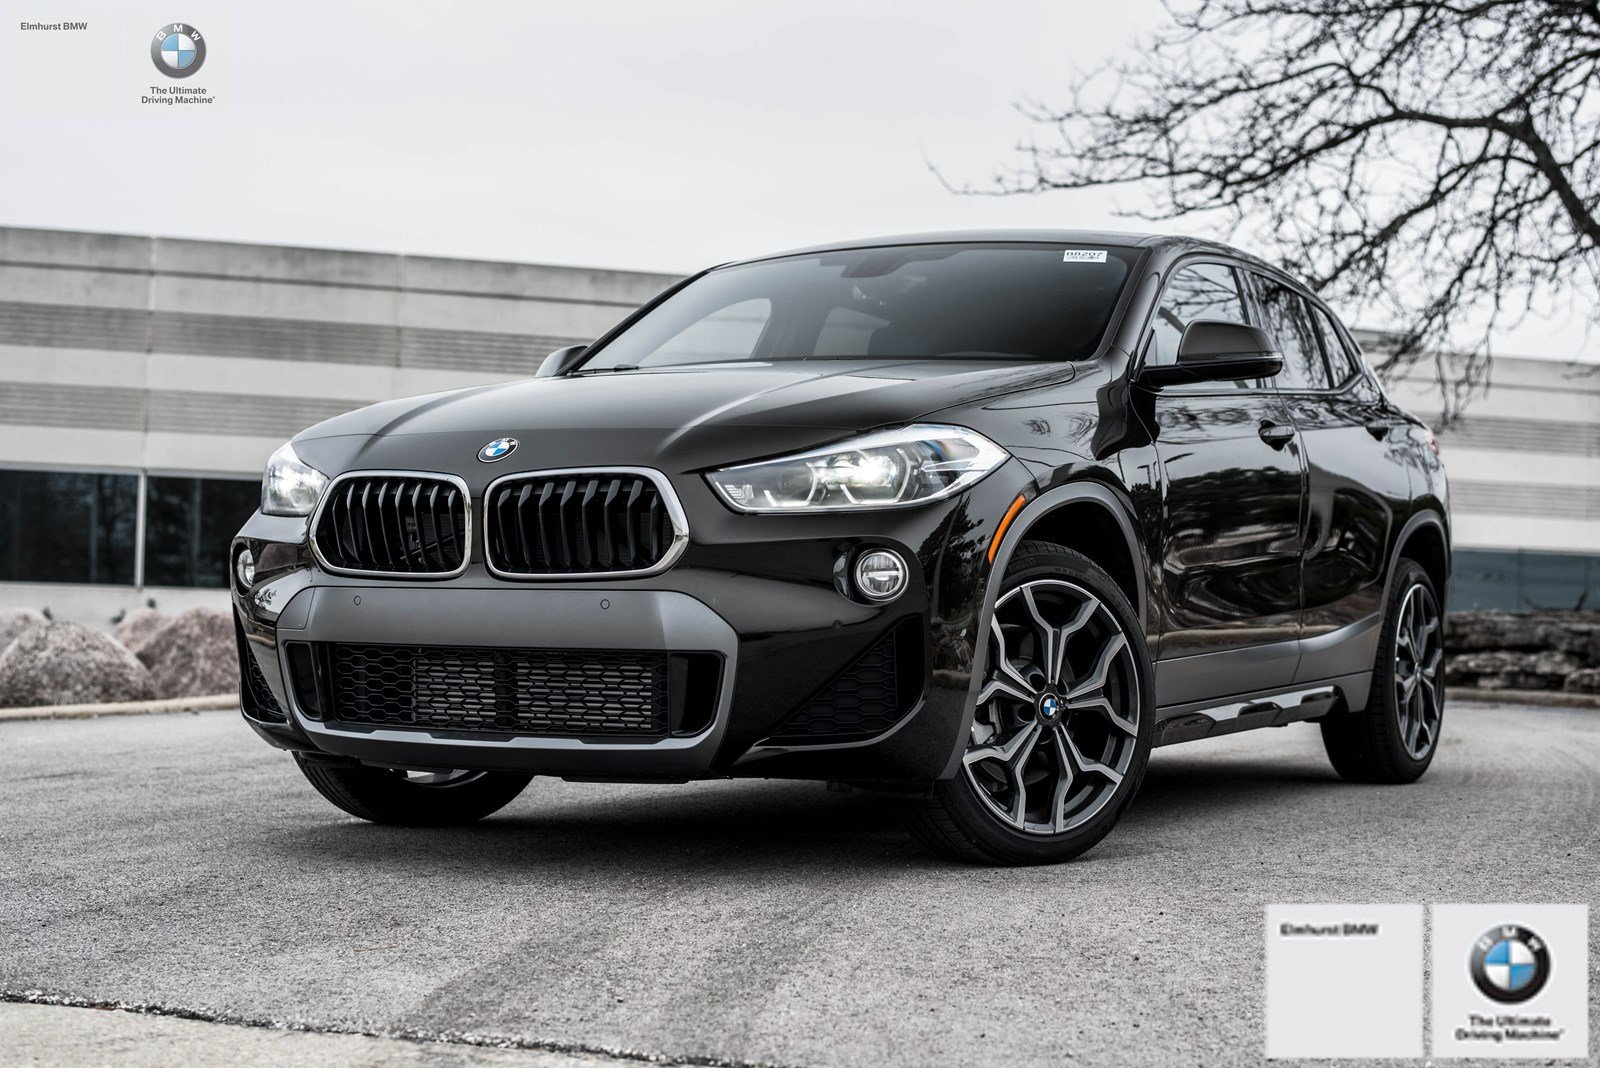 new 2018 bmw x2 xdrive28i sport utility in elmhurst b8207 elmhurst bmw. Black Bedroom Furniture Sets. Home Design Ideas